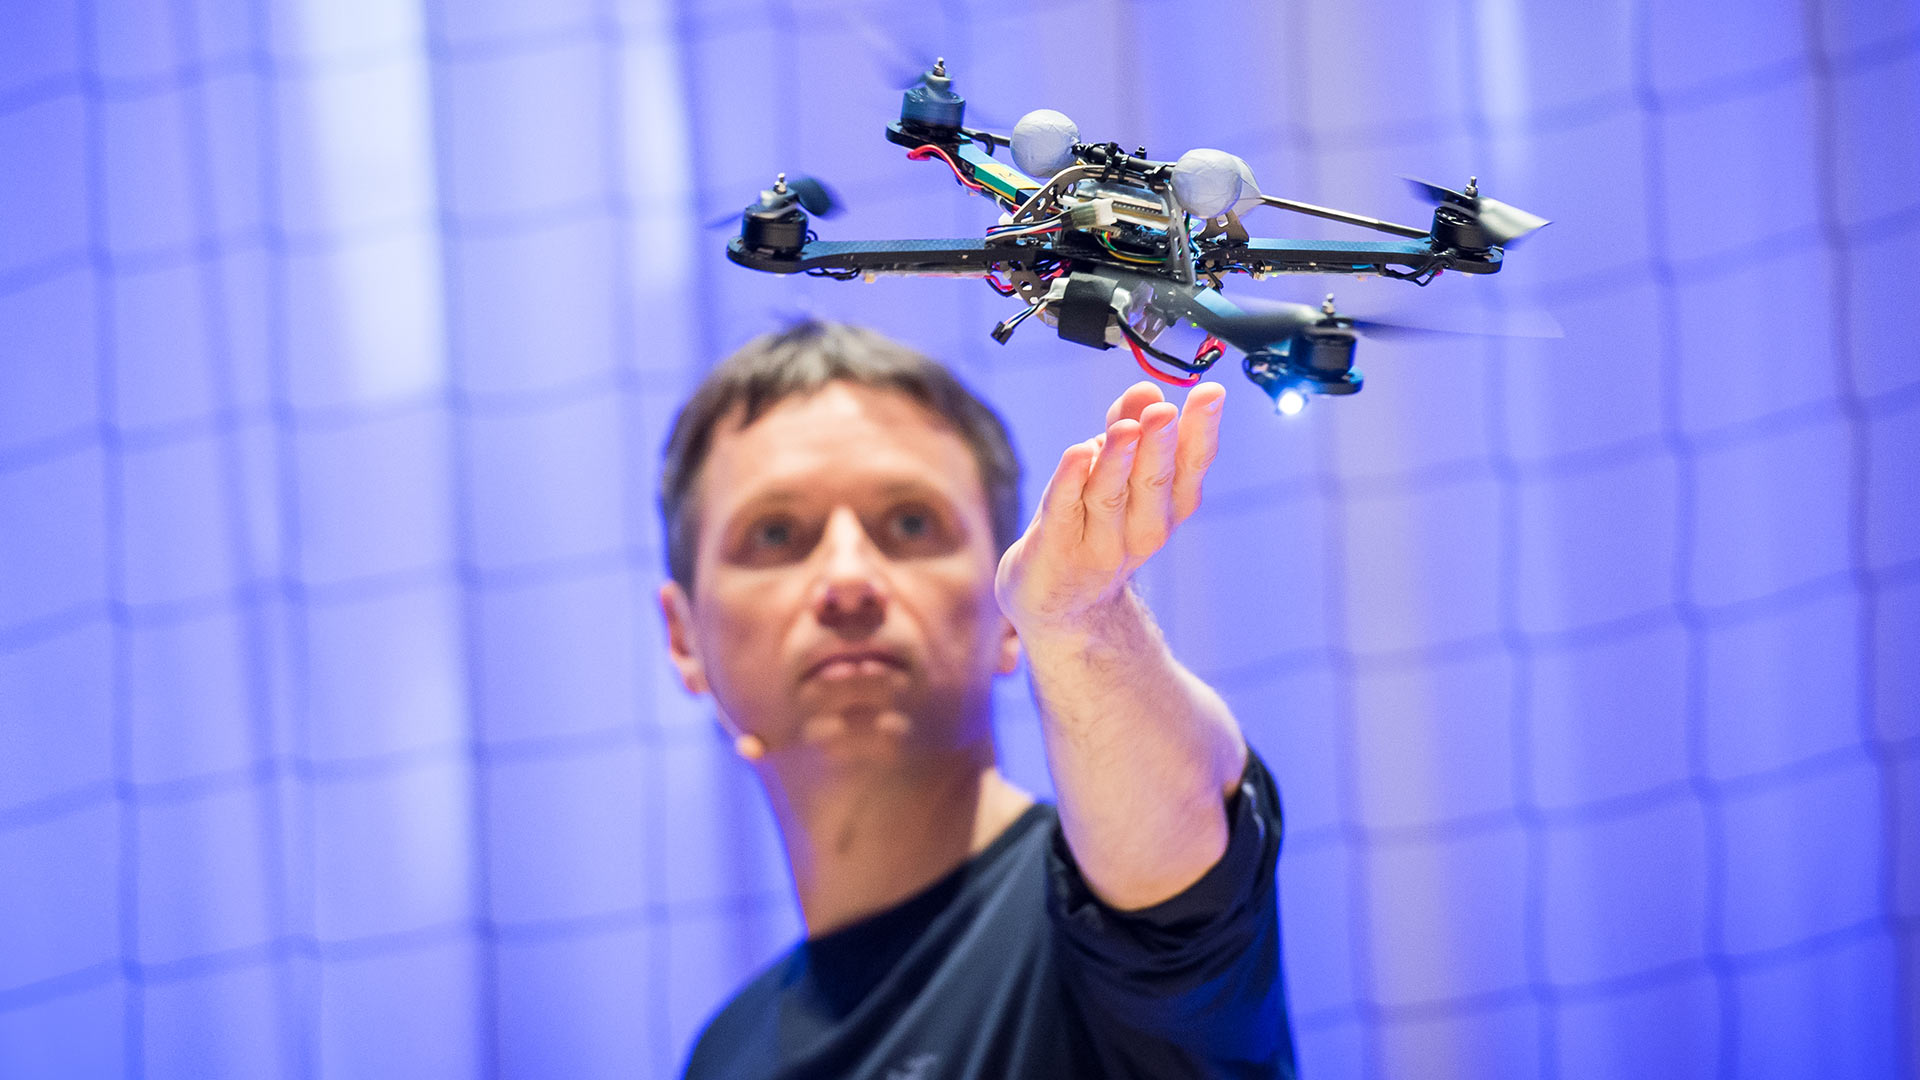 Raffaello D'Andrea: The astounding athletic power of quadcopters thumbnail